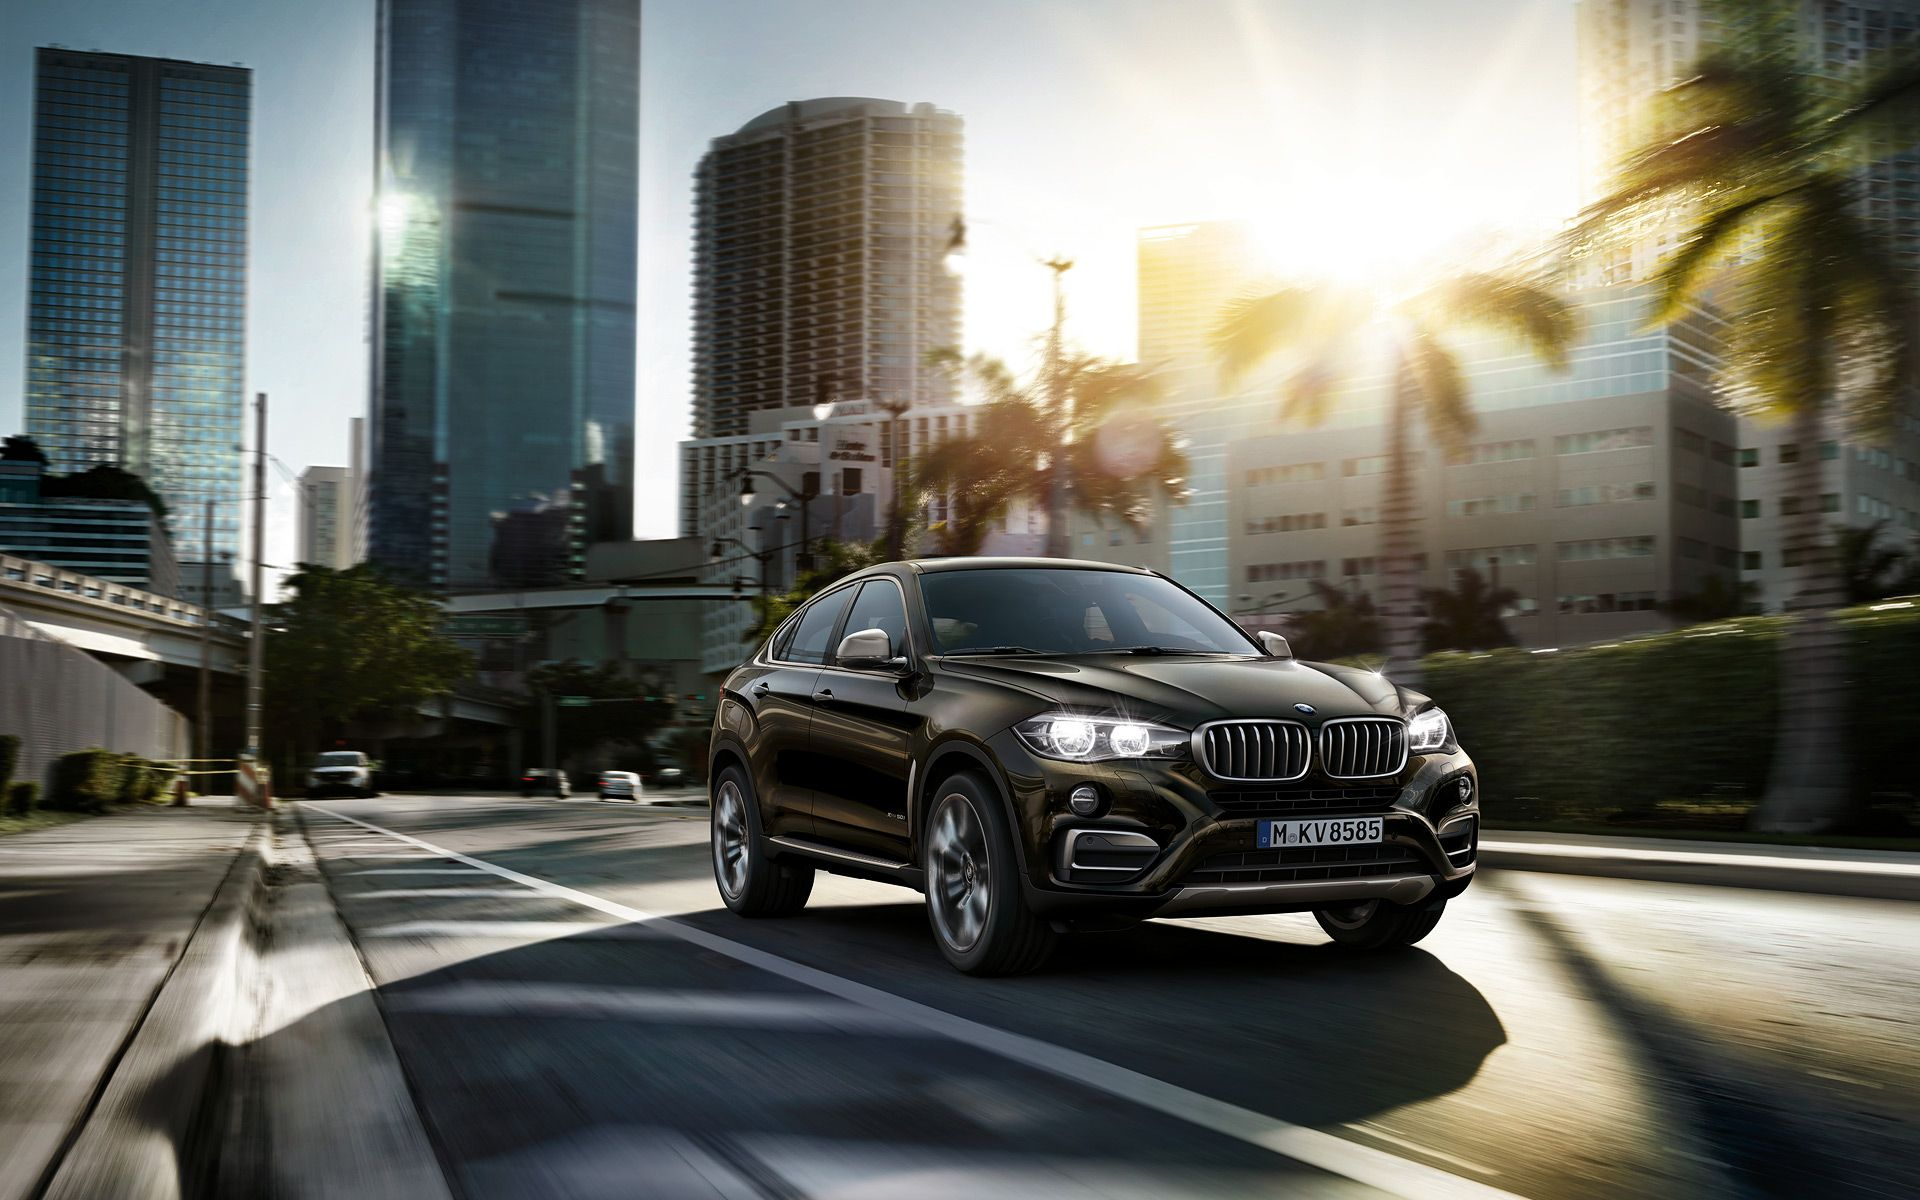 Bmw x wallpapers in hd k and wide sizes